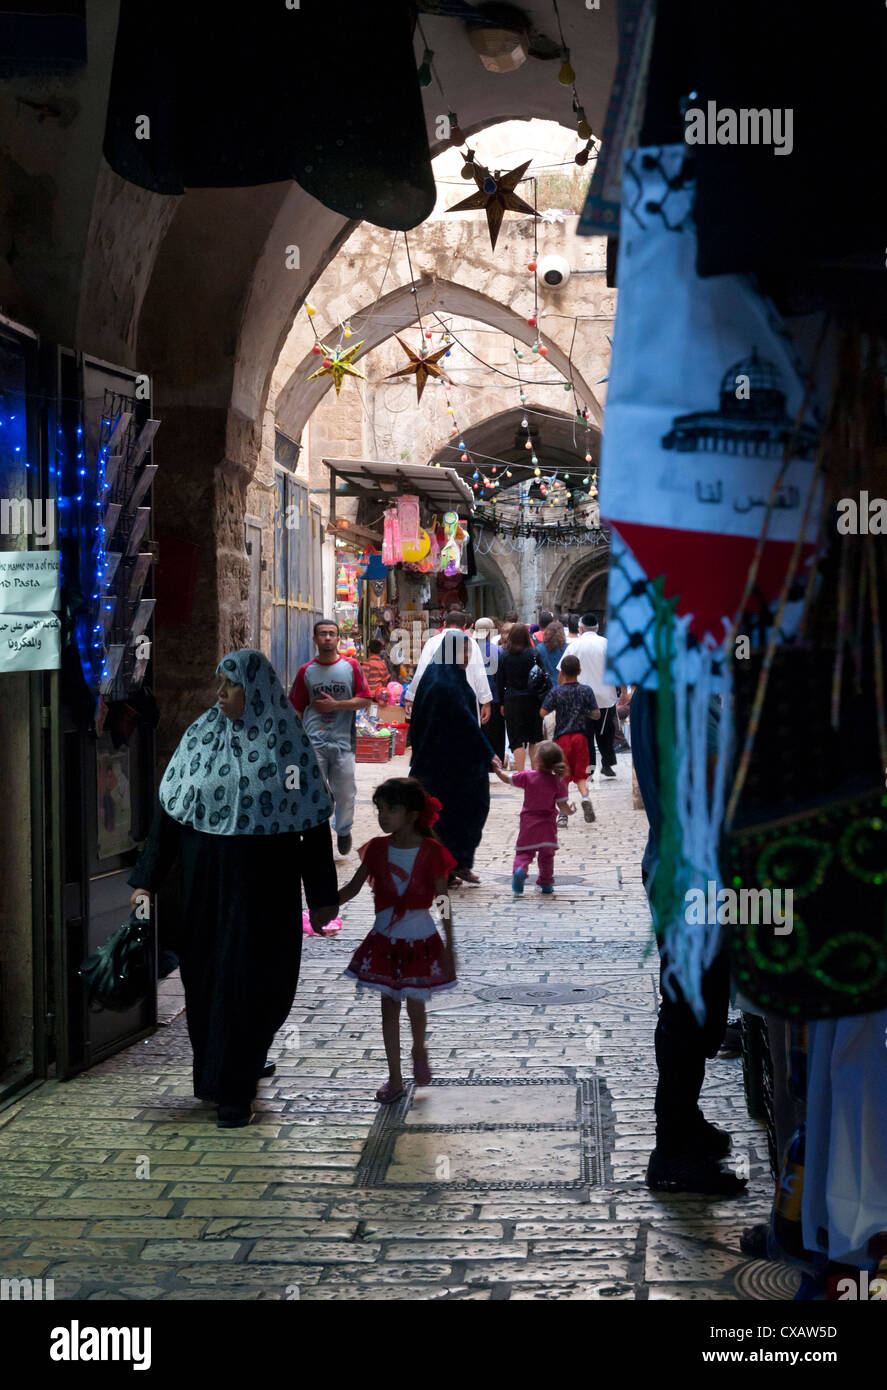 Ramadan decorations in the Old City, Jerusalem, Israel, Middle East - Stock Image